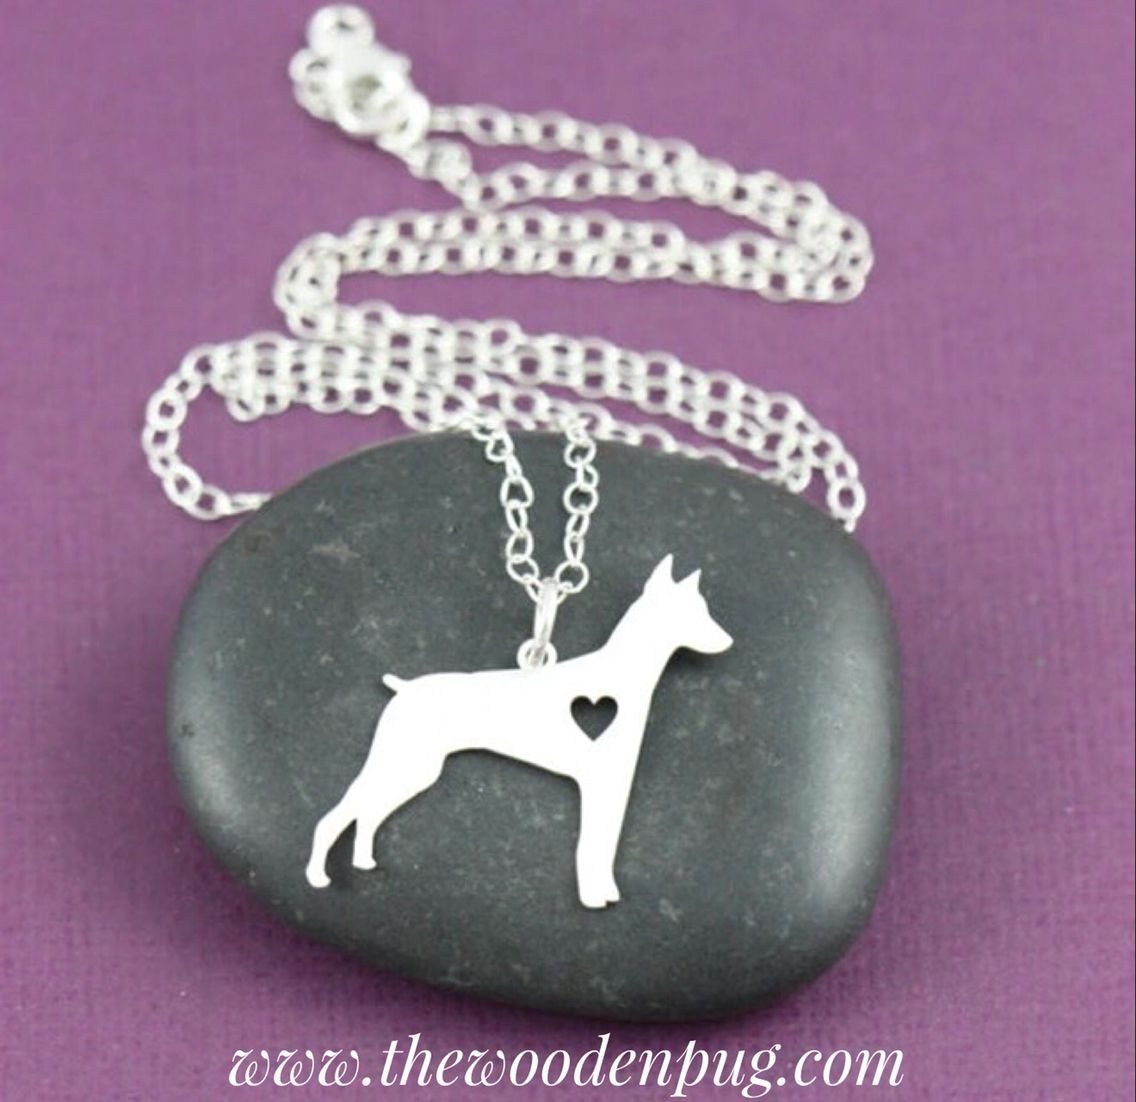 Doberman Necklace (Silver Plated) - www.thewoodenpug.com #dobie #dognecklace